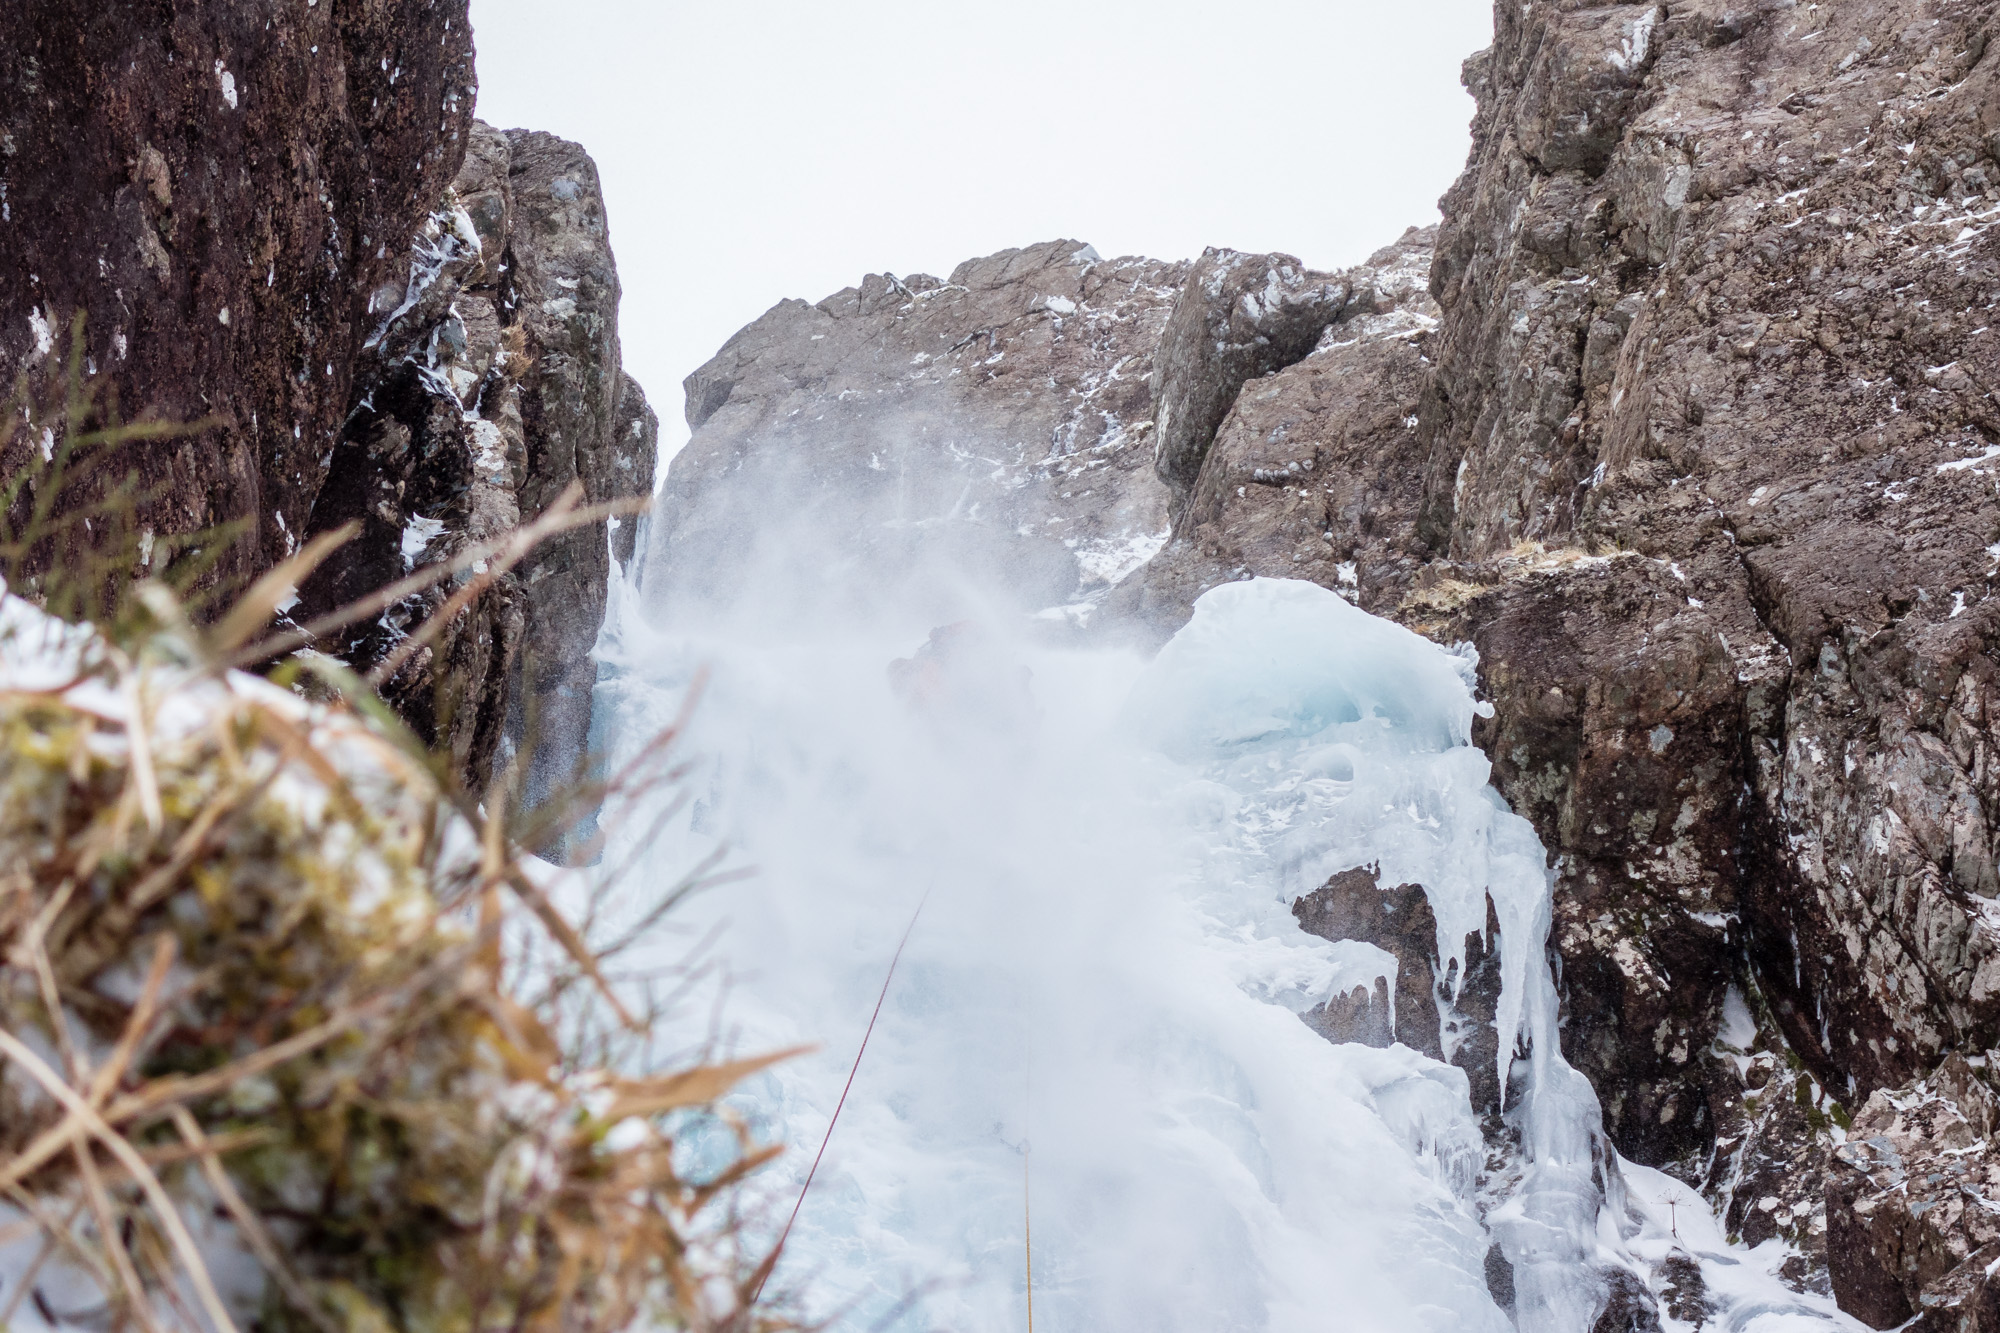 From the shelter of the belay Ric captures a refreshing spindrift shower, which felt like lasted forever! Photo credit: Ric Hines